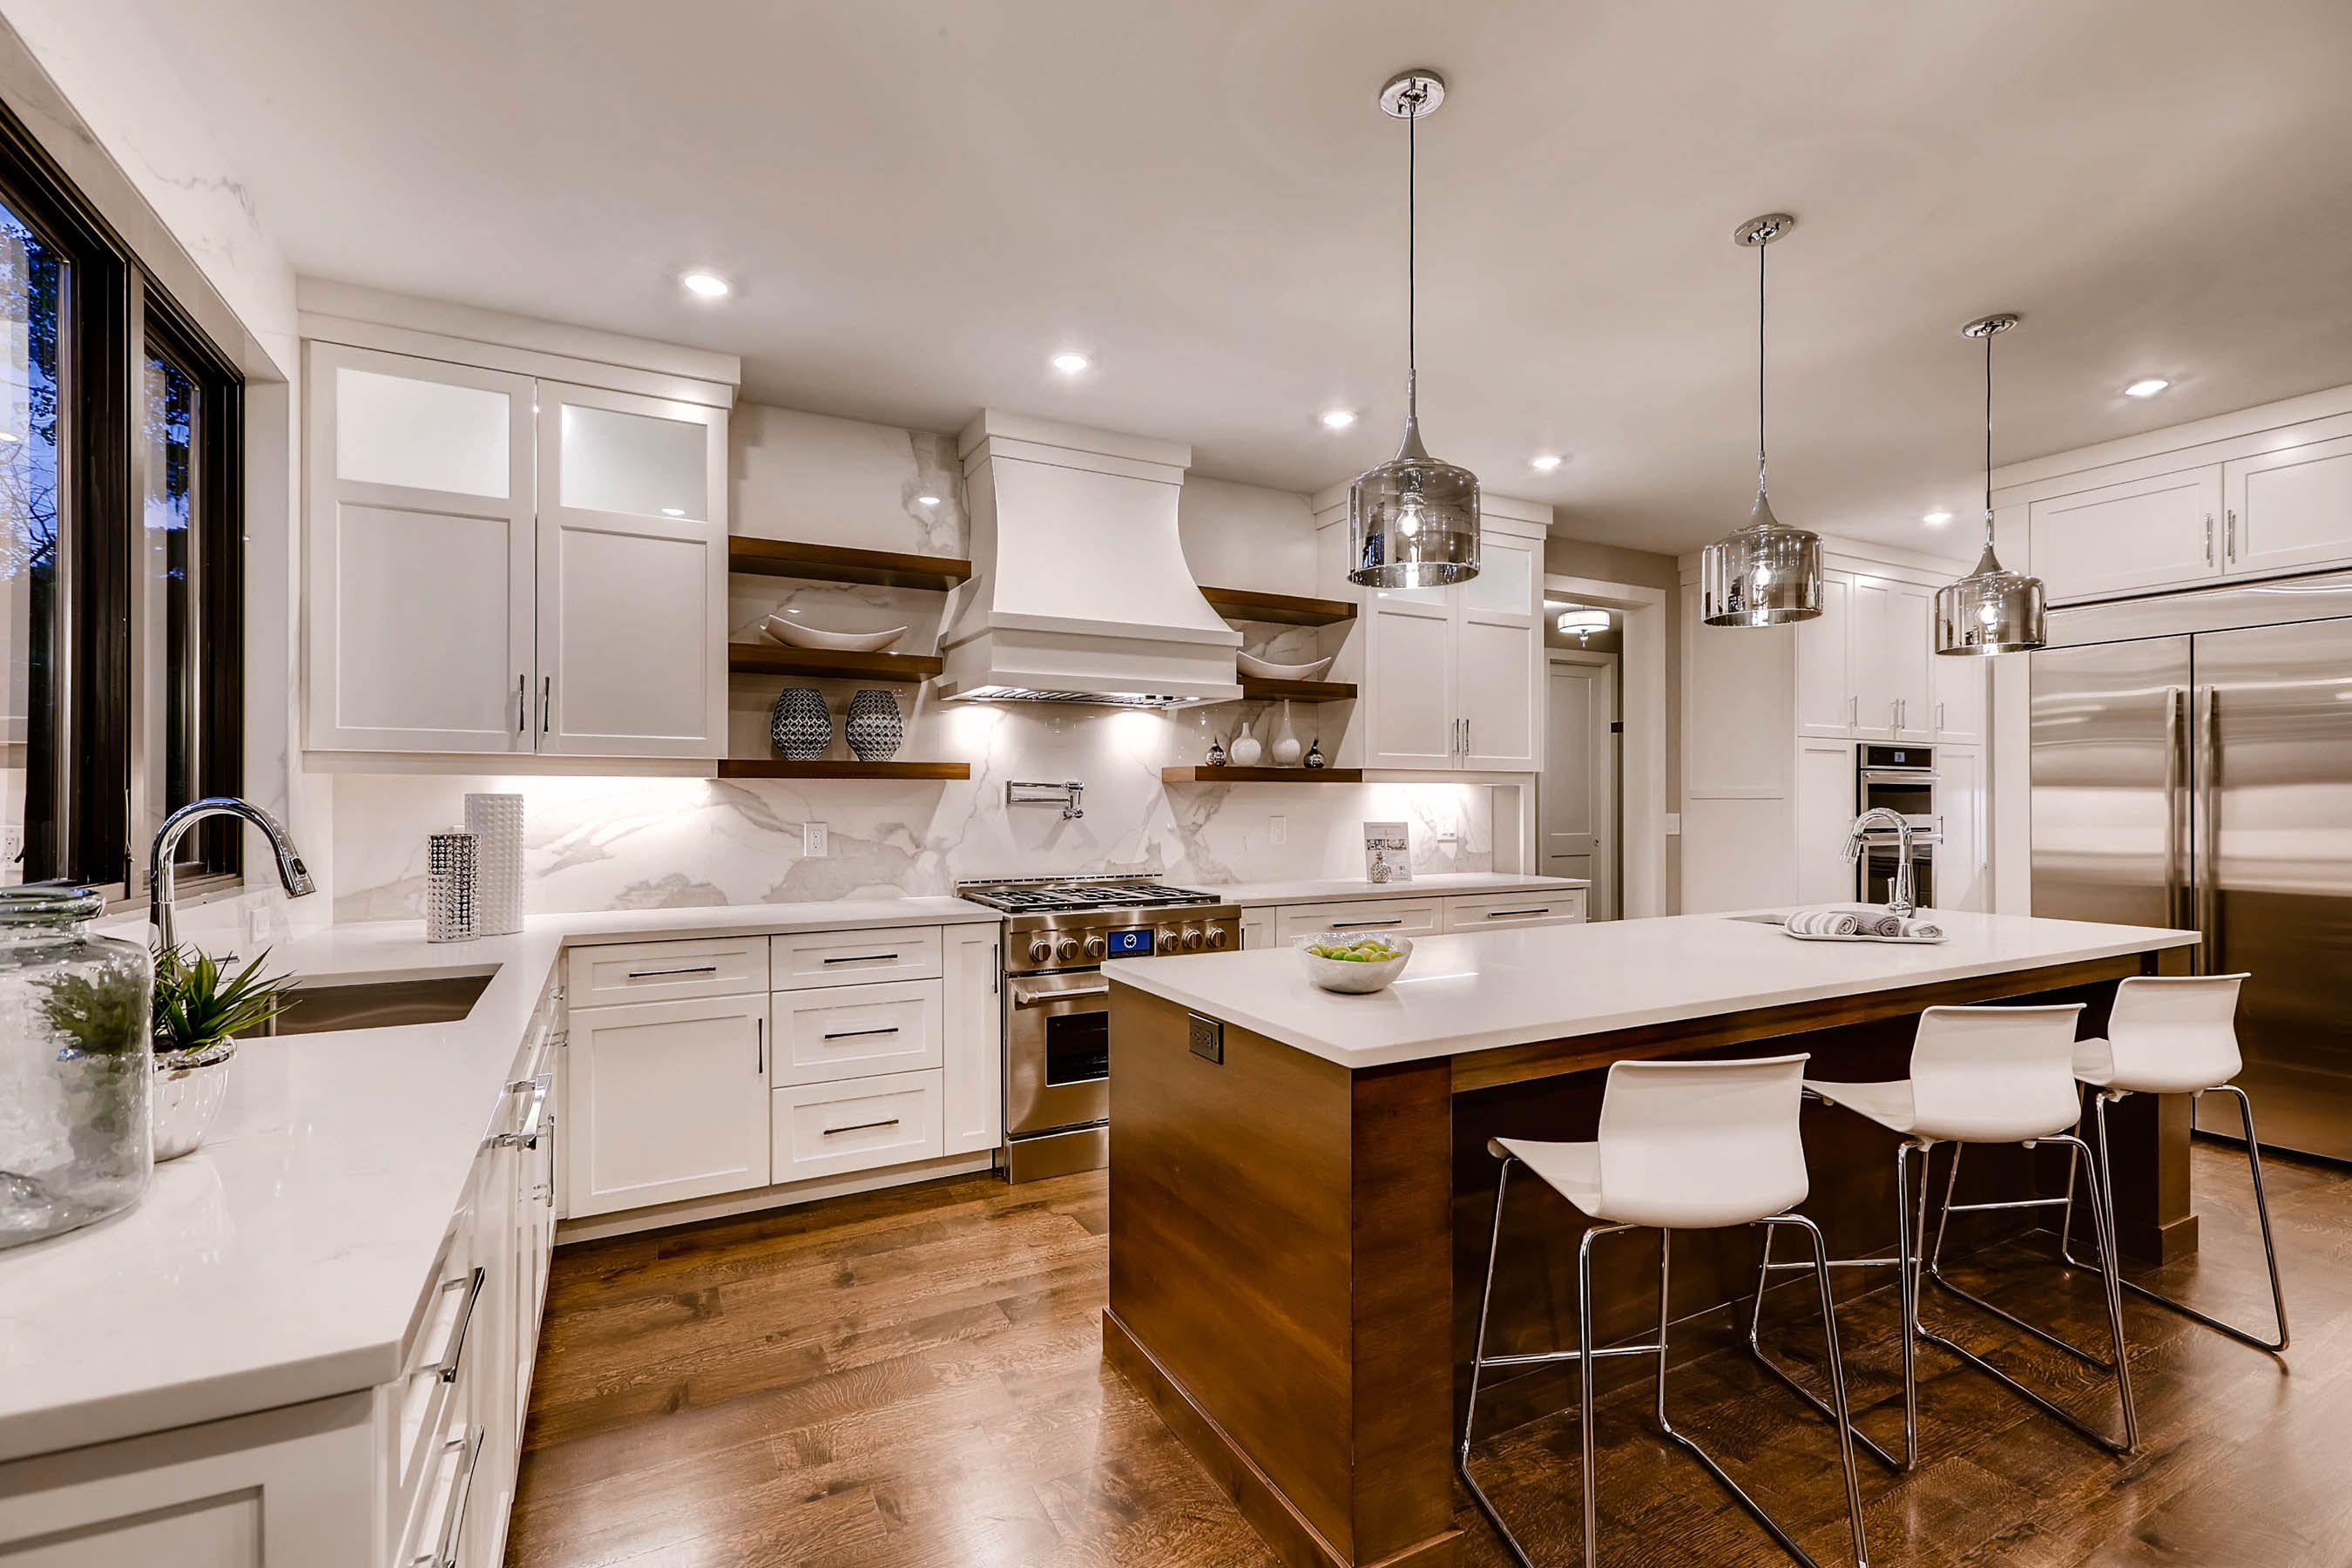 Custom white kitchen with wood floors in this six-bedroom $1.6 million home in Colorado [OS] [2700 X 1800]